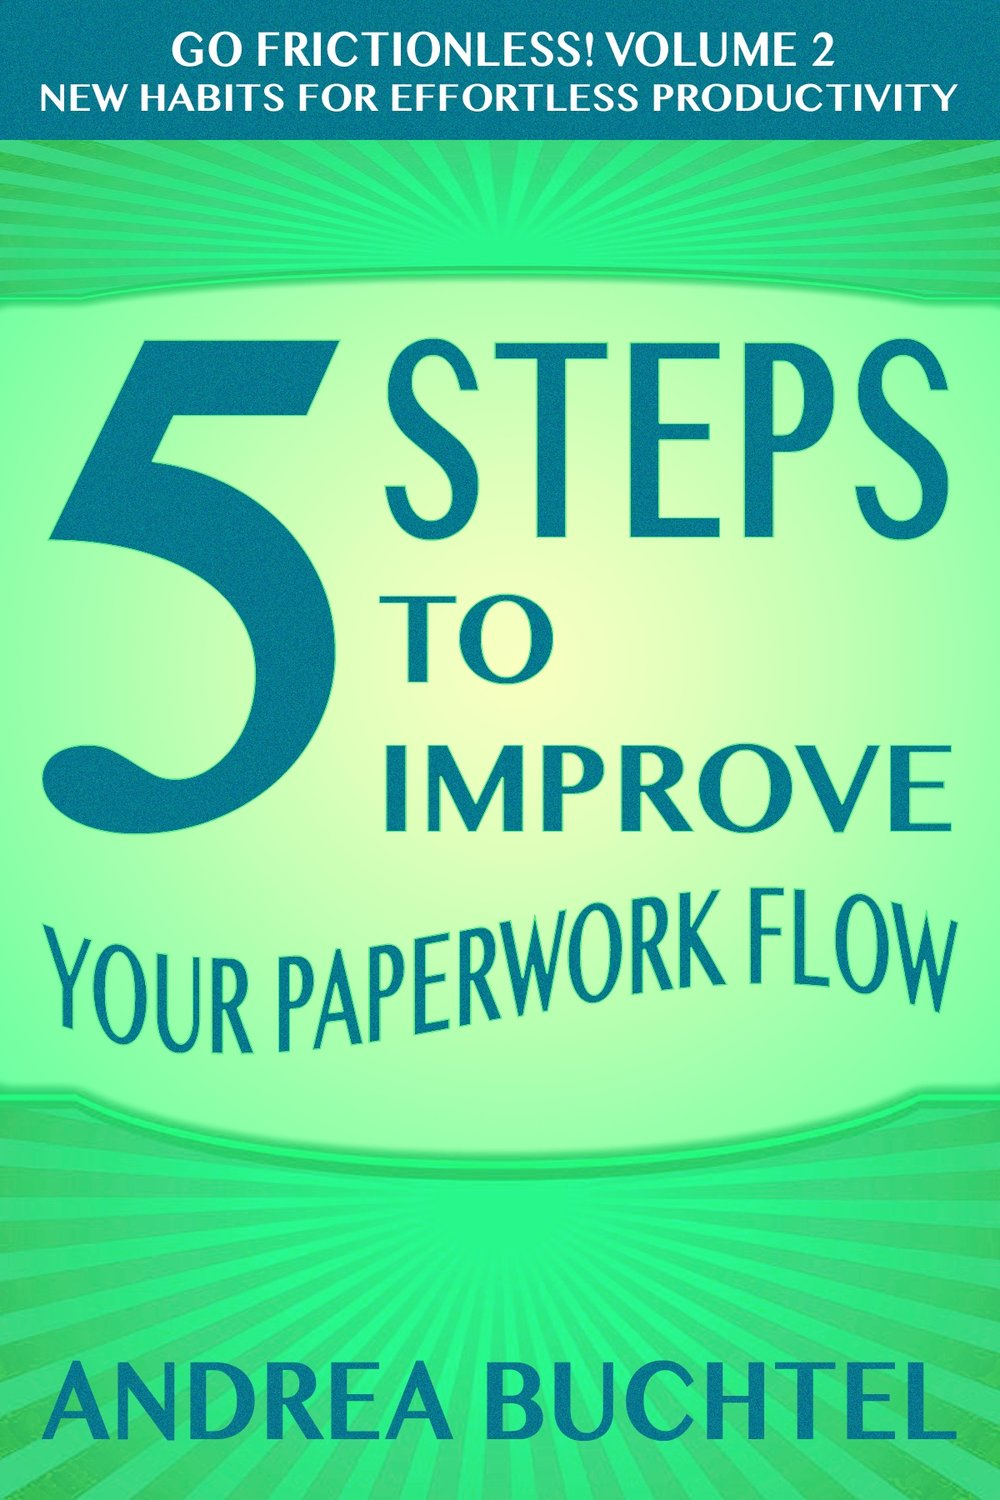 5 Steps to Improve Your Paperwork Flow - Andrea Buchtel